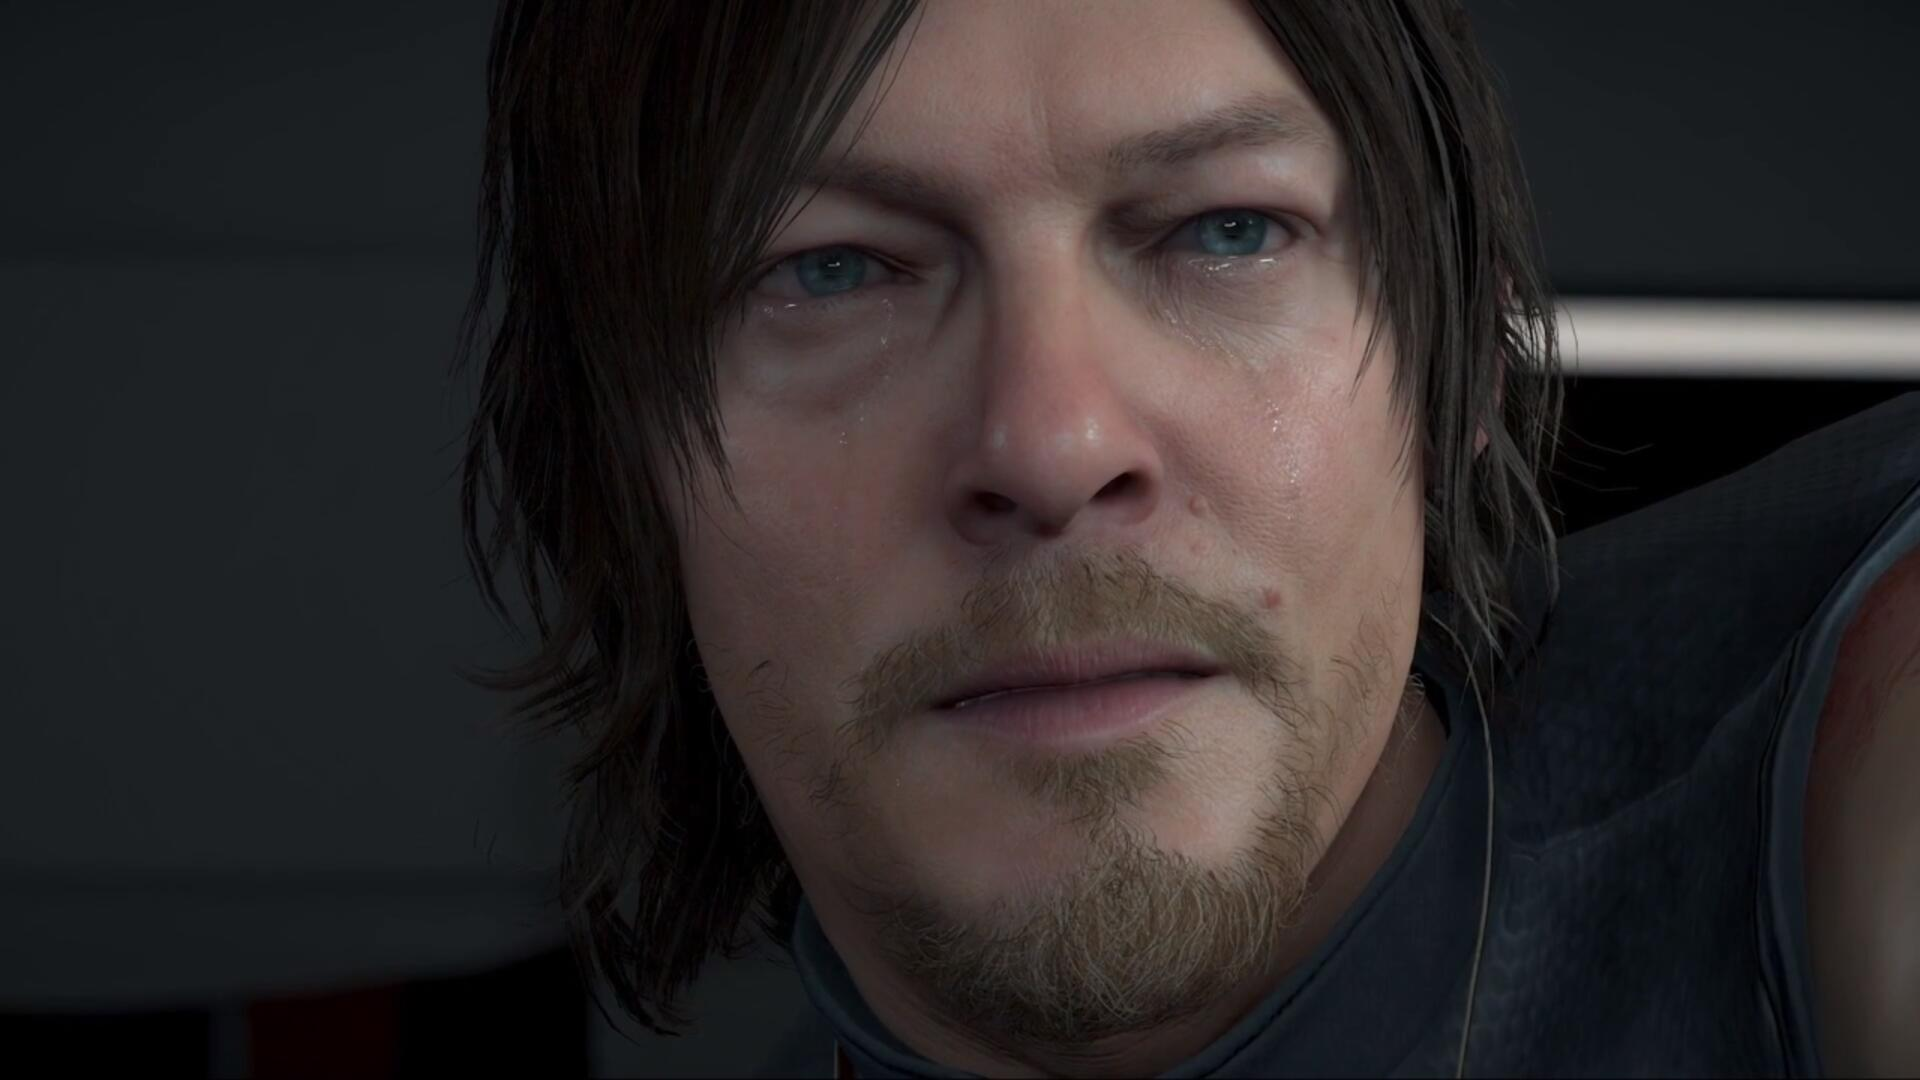 It's True, Death Stranding is Releasing on PS4 This November